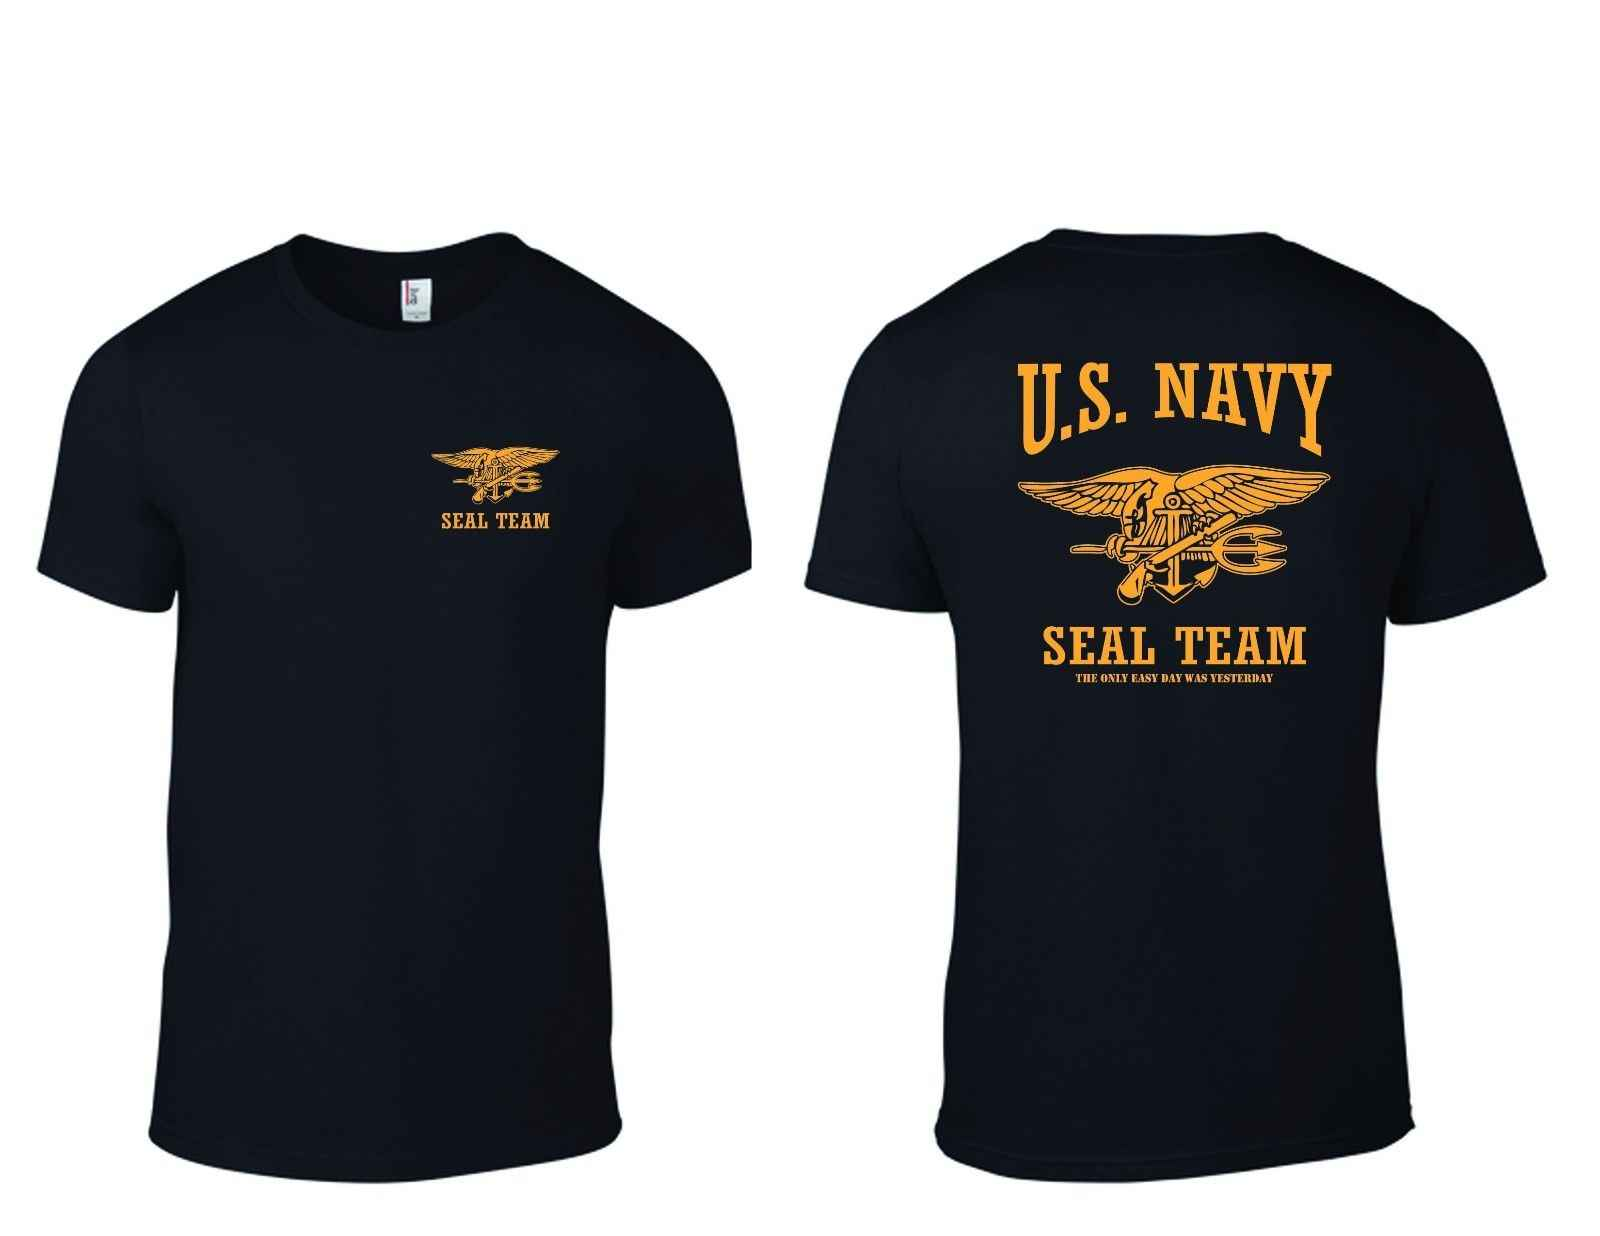 Us NAVY SEAL TEAM T-Shirt Only Easy Day Was hier B/Y T-SHIRT imprimé t-shirts à manches courtes Hipster Tee grande taille